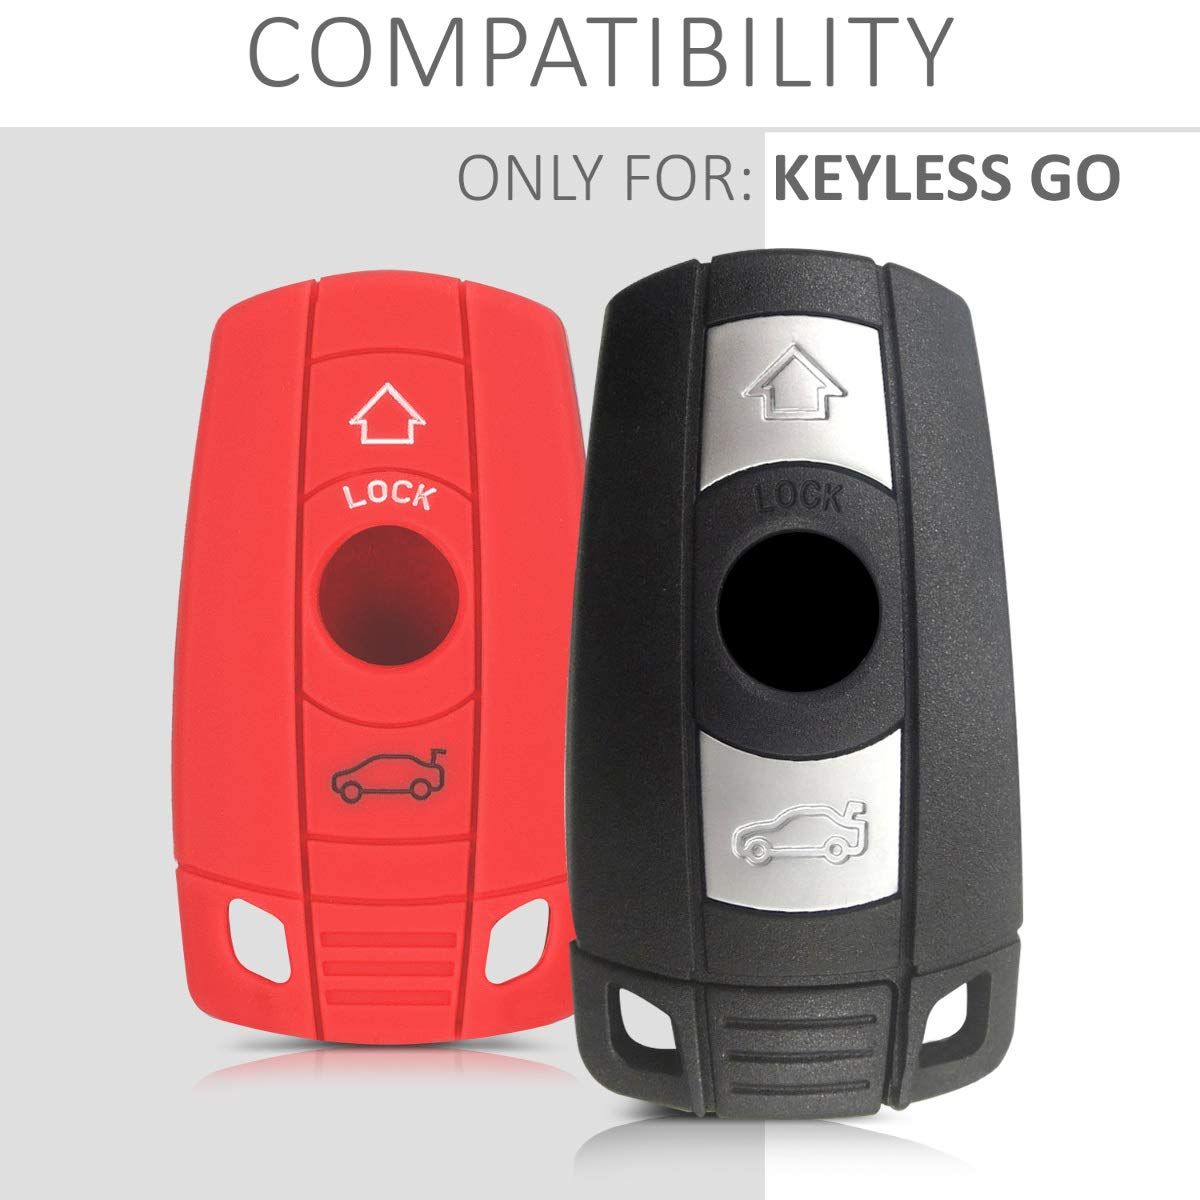 only Keyless Go kwmobile Car Key Cover for BMW - Metallic Silver Silicone Protective Key Fob Cover for BMW 3 Button Car Key